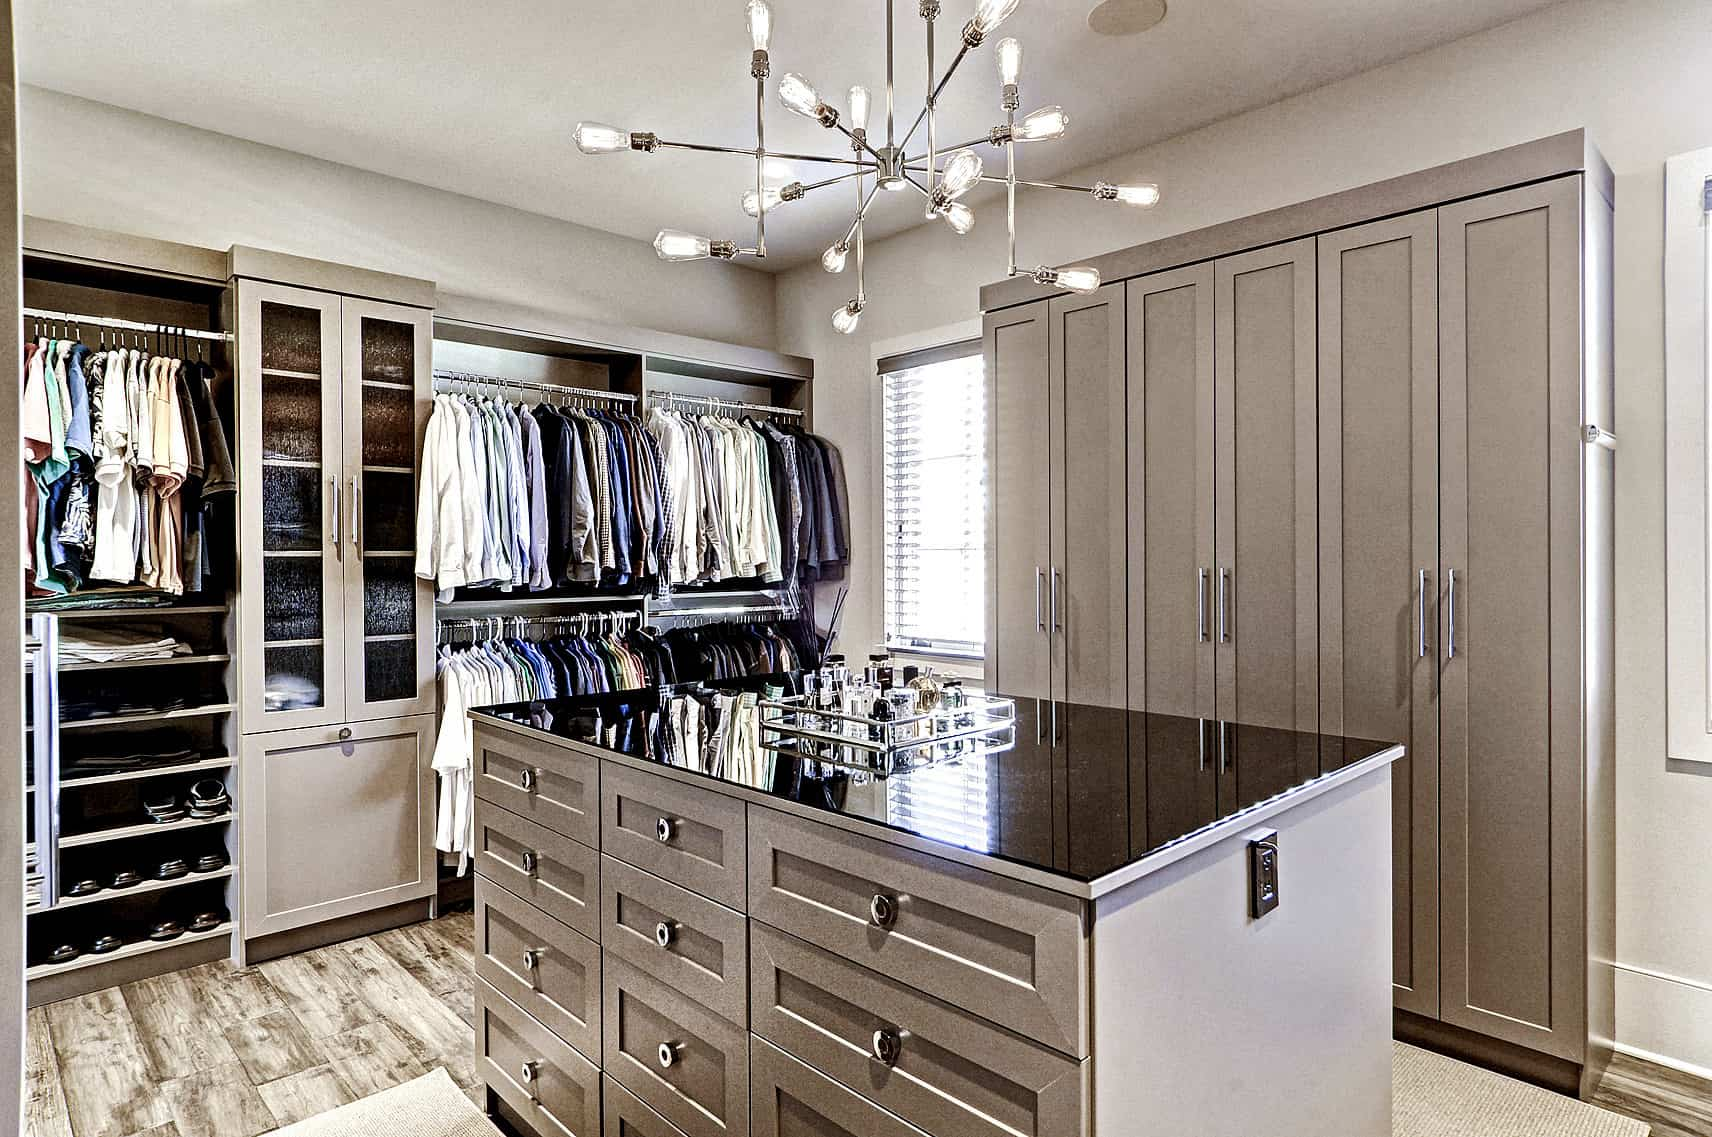 Stylish bedroom closet featuring gray walls, hardwood flooring, cabinetry finish and a gorgeous ceiling light.